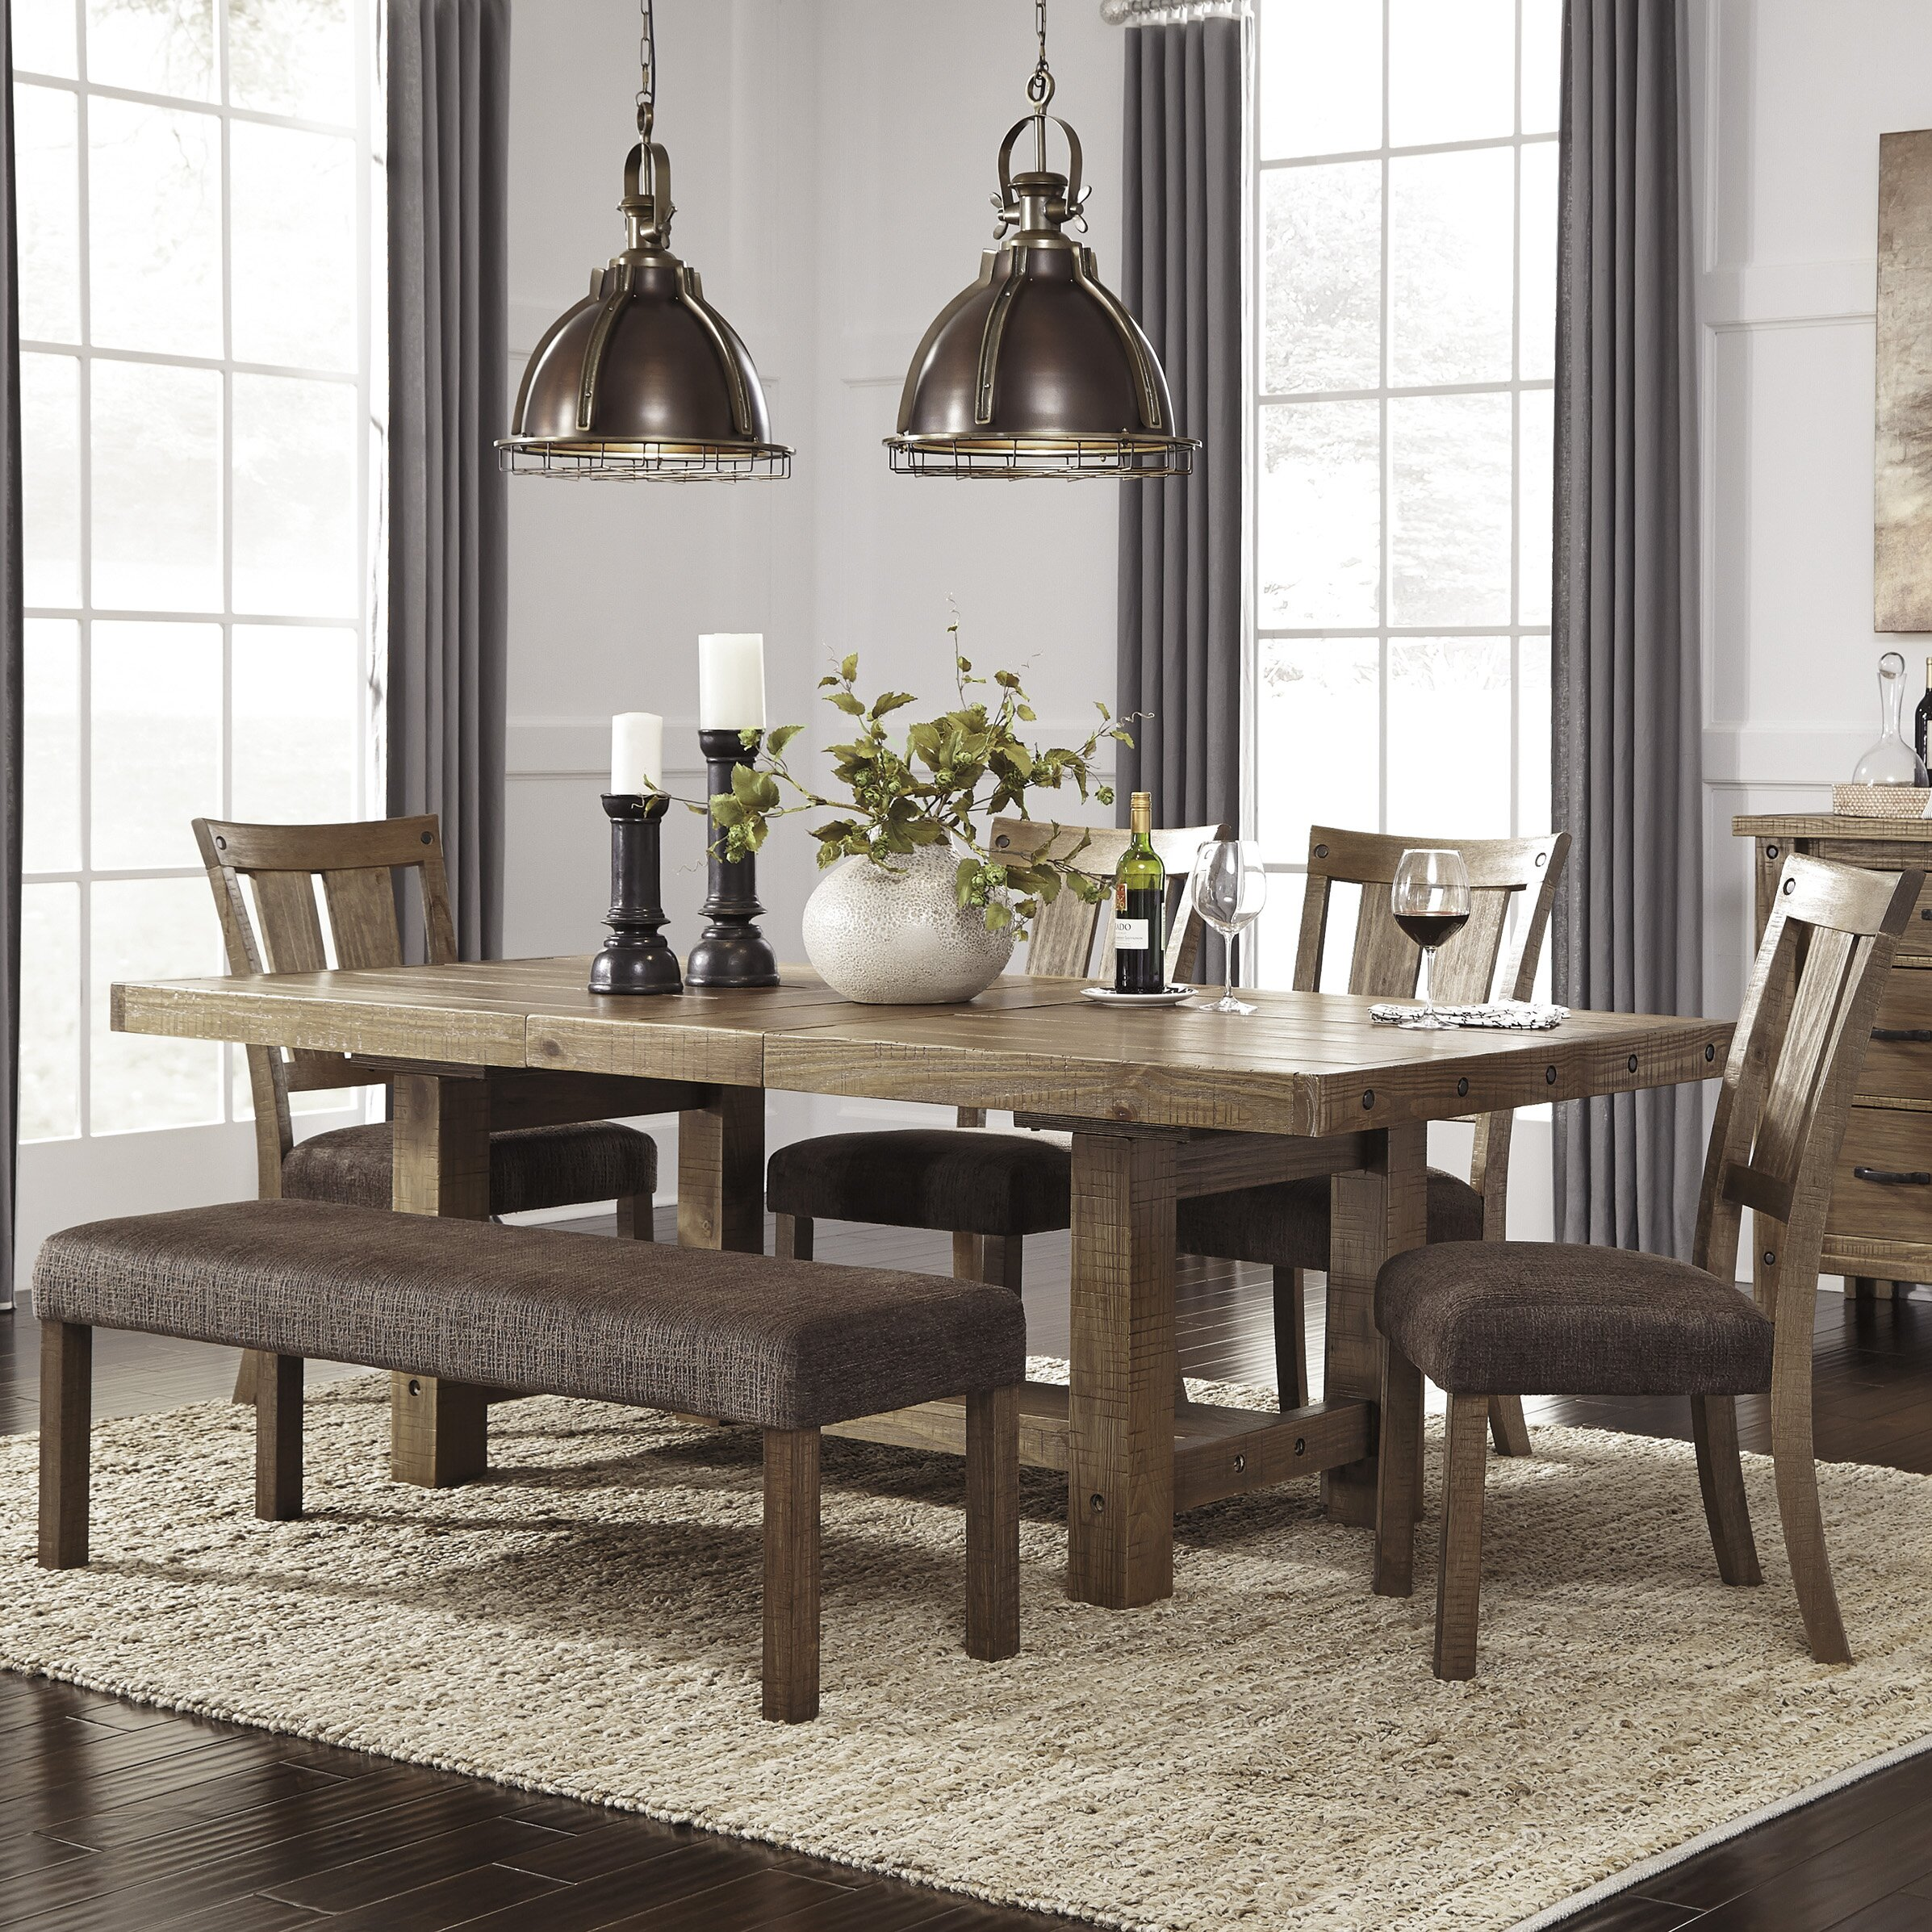 Signature design by ashley 9 piece dining set reviews for Breakfast sets furniture